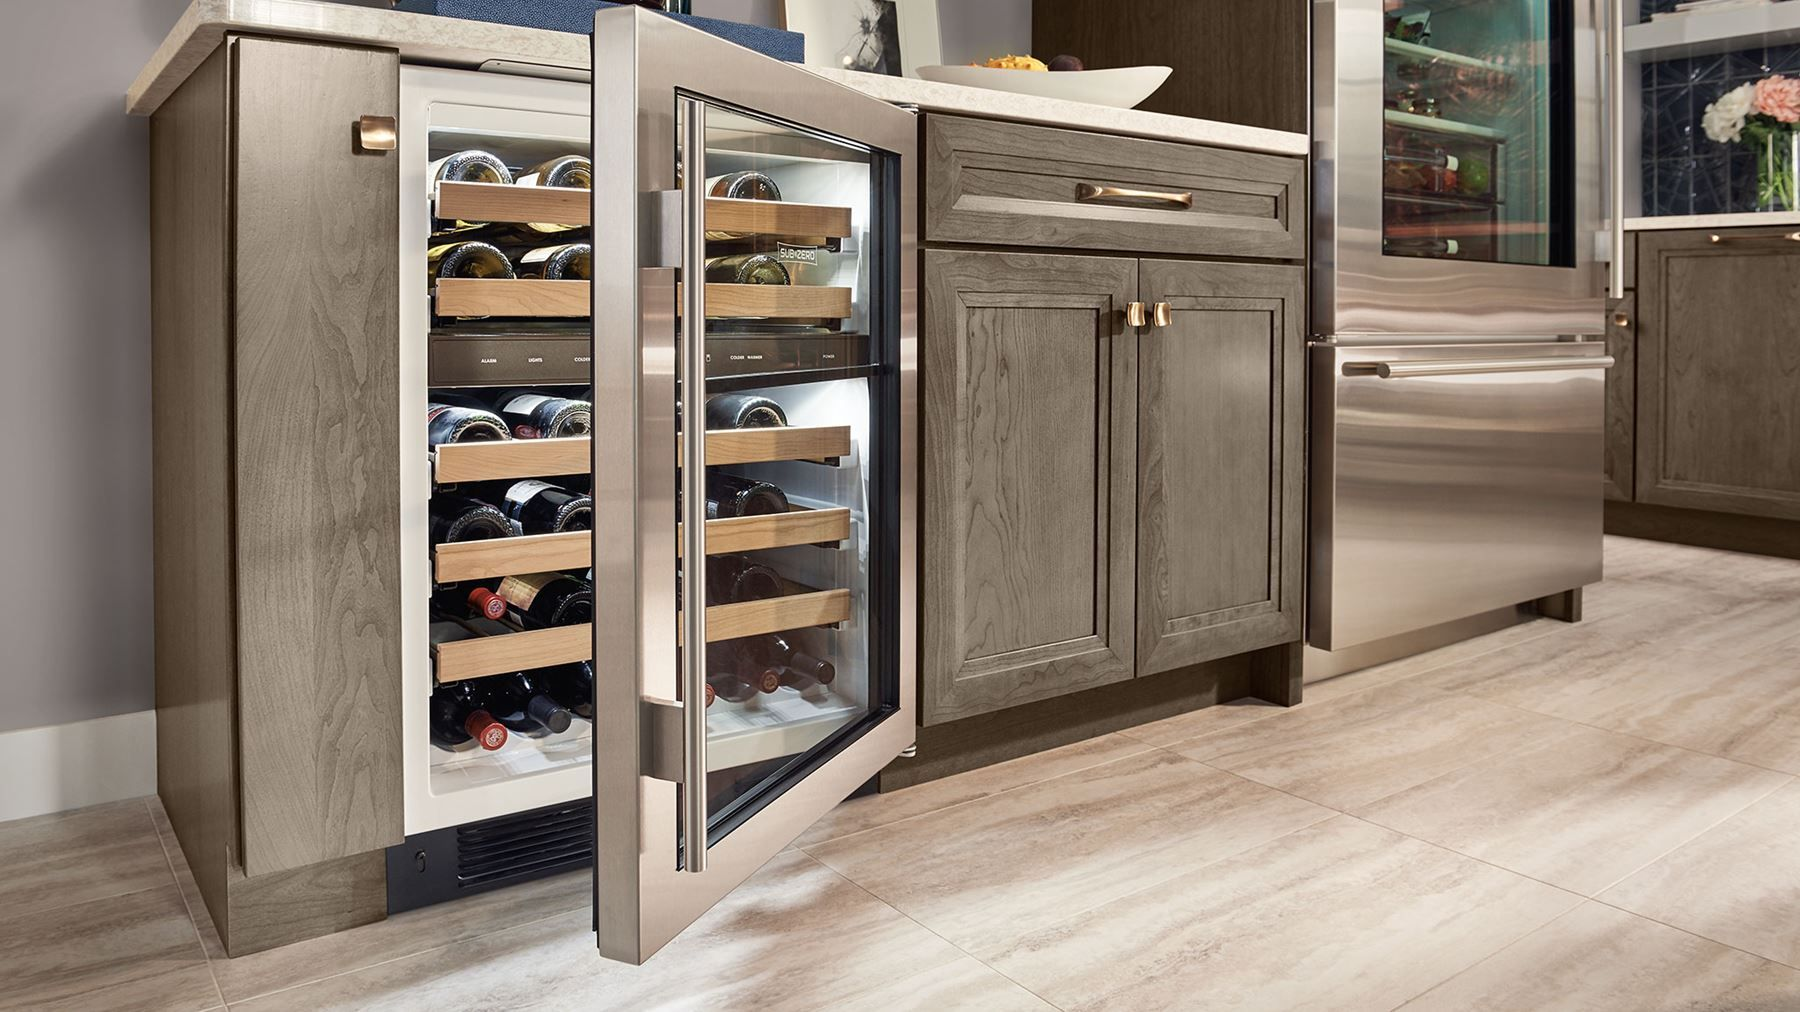 Get the best out of every glass with a wine refrigerator ...